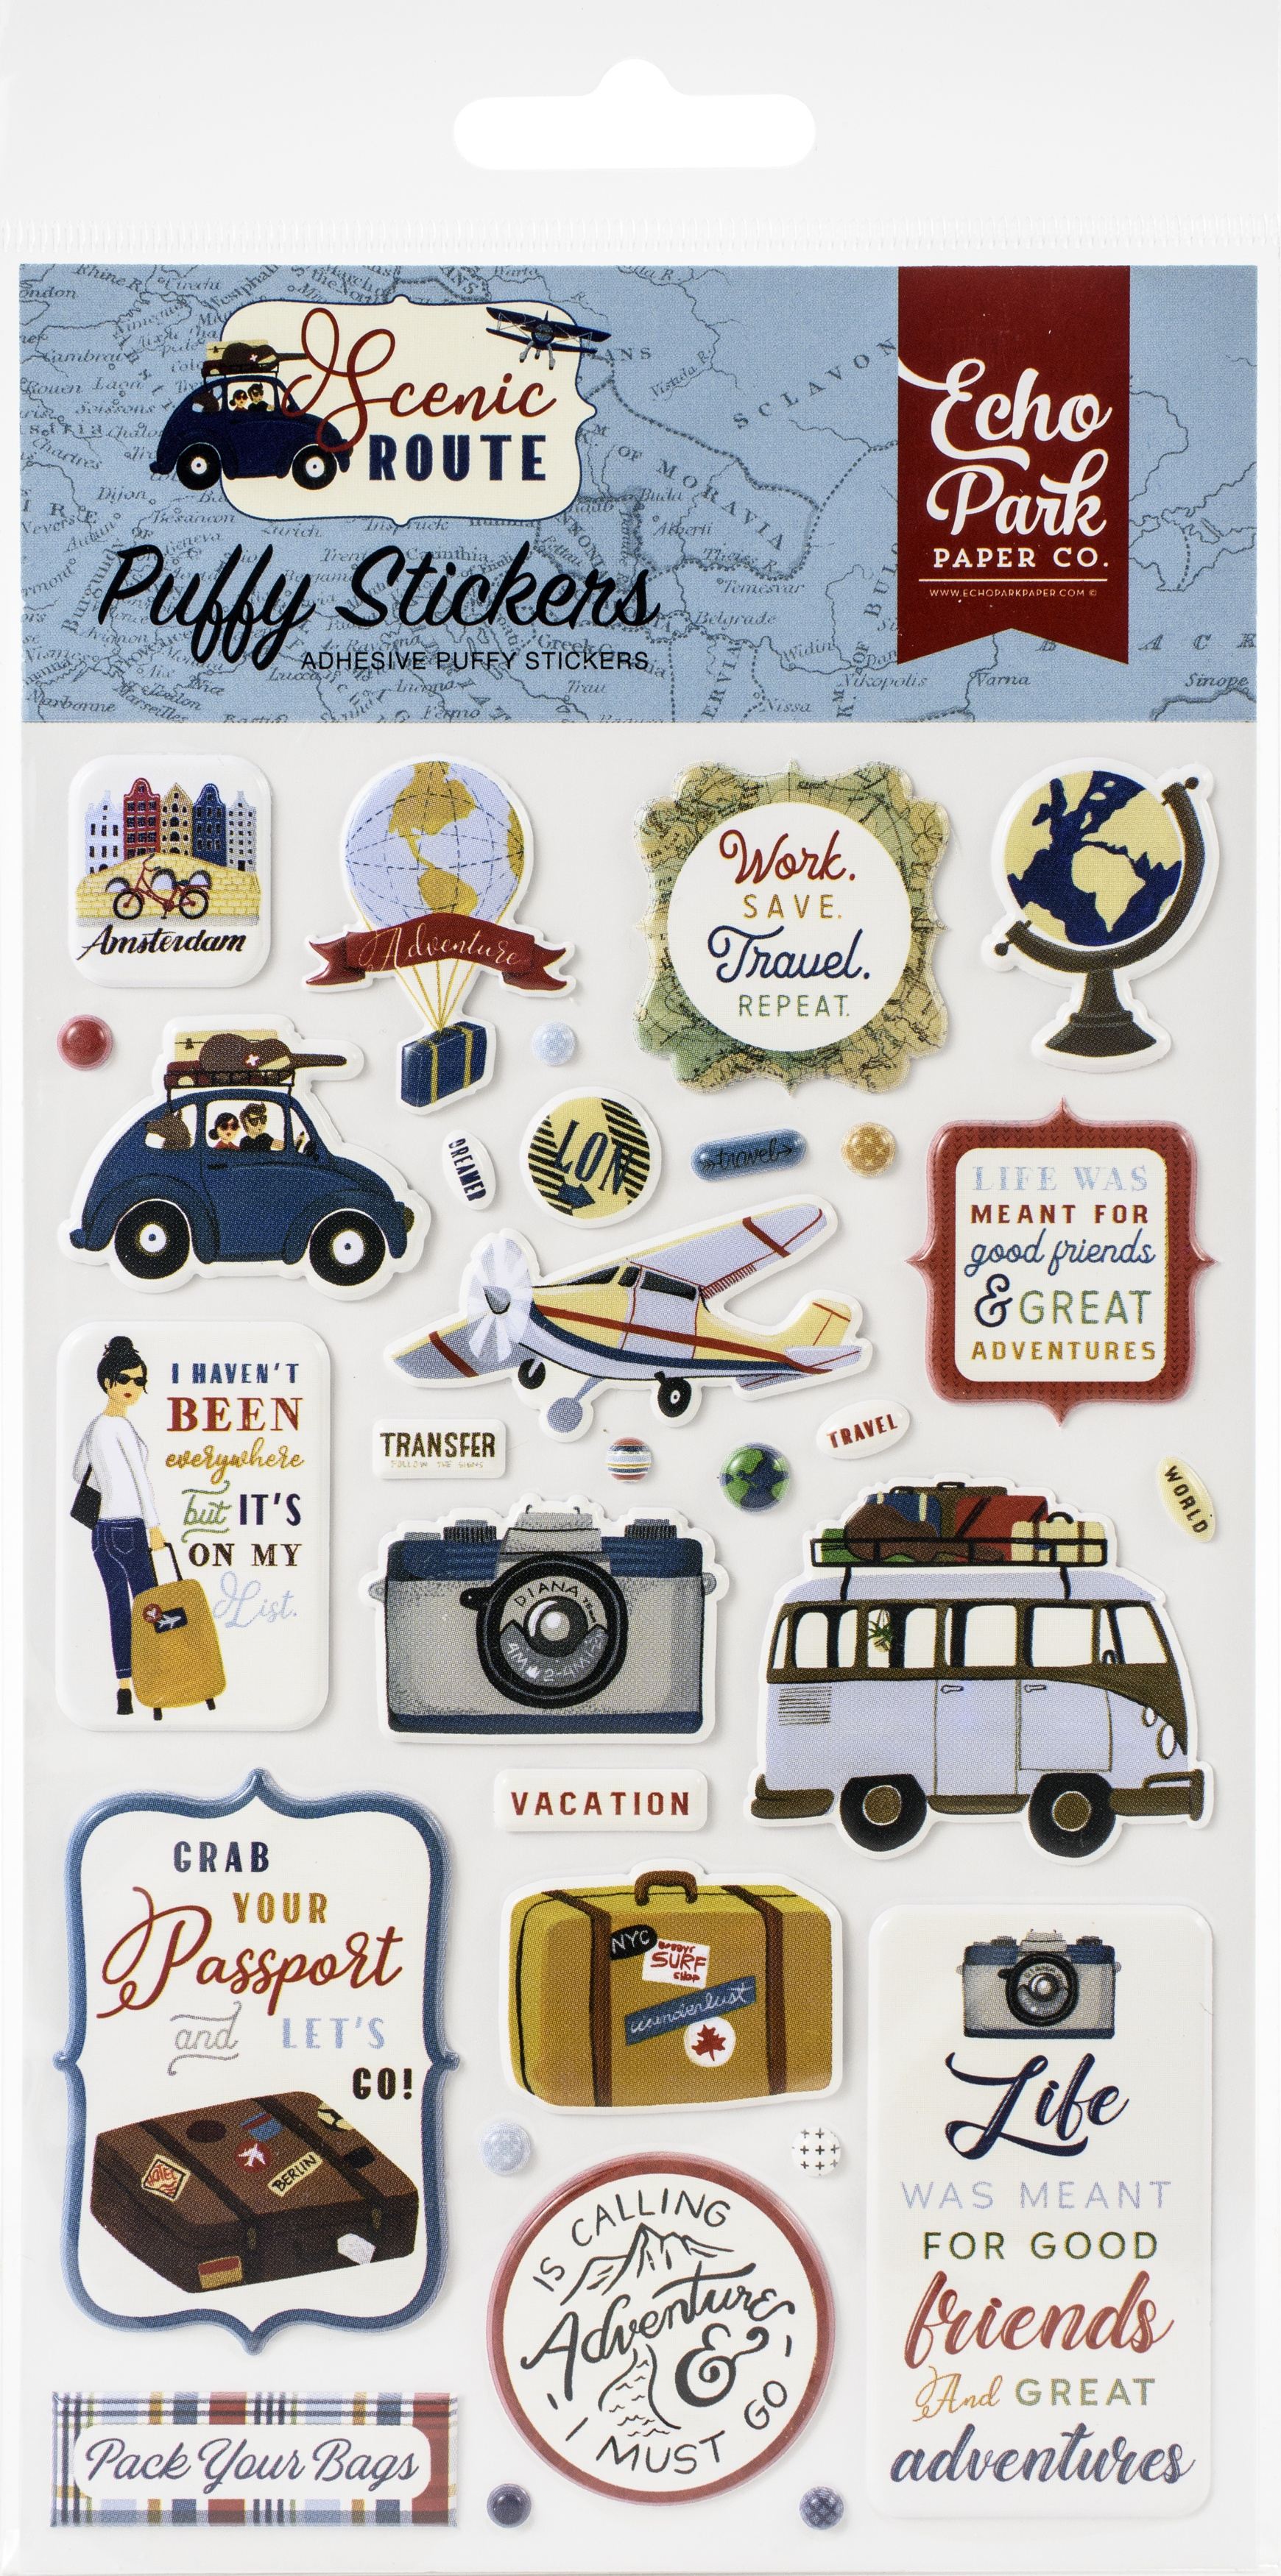 Scenic Route Puffy Stickers-